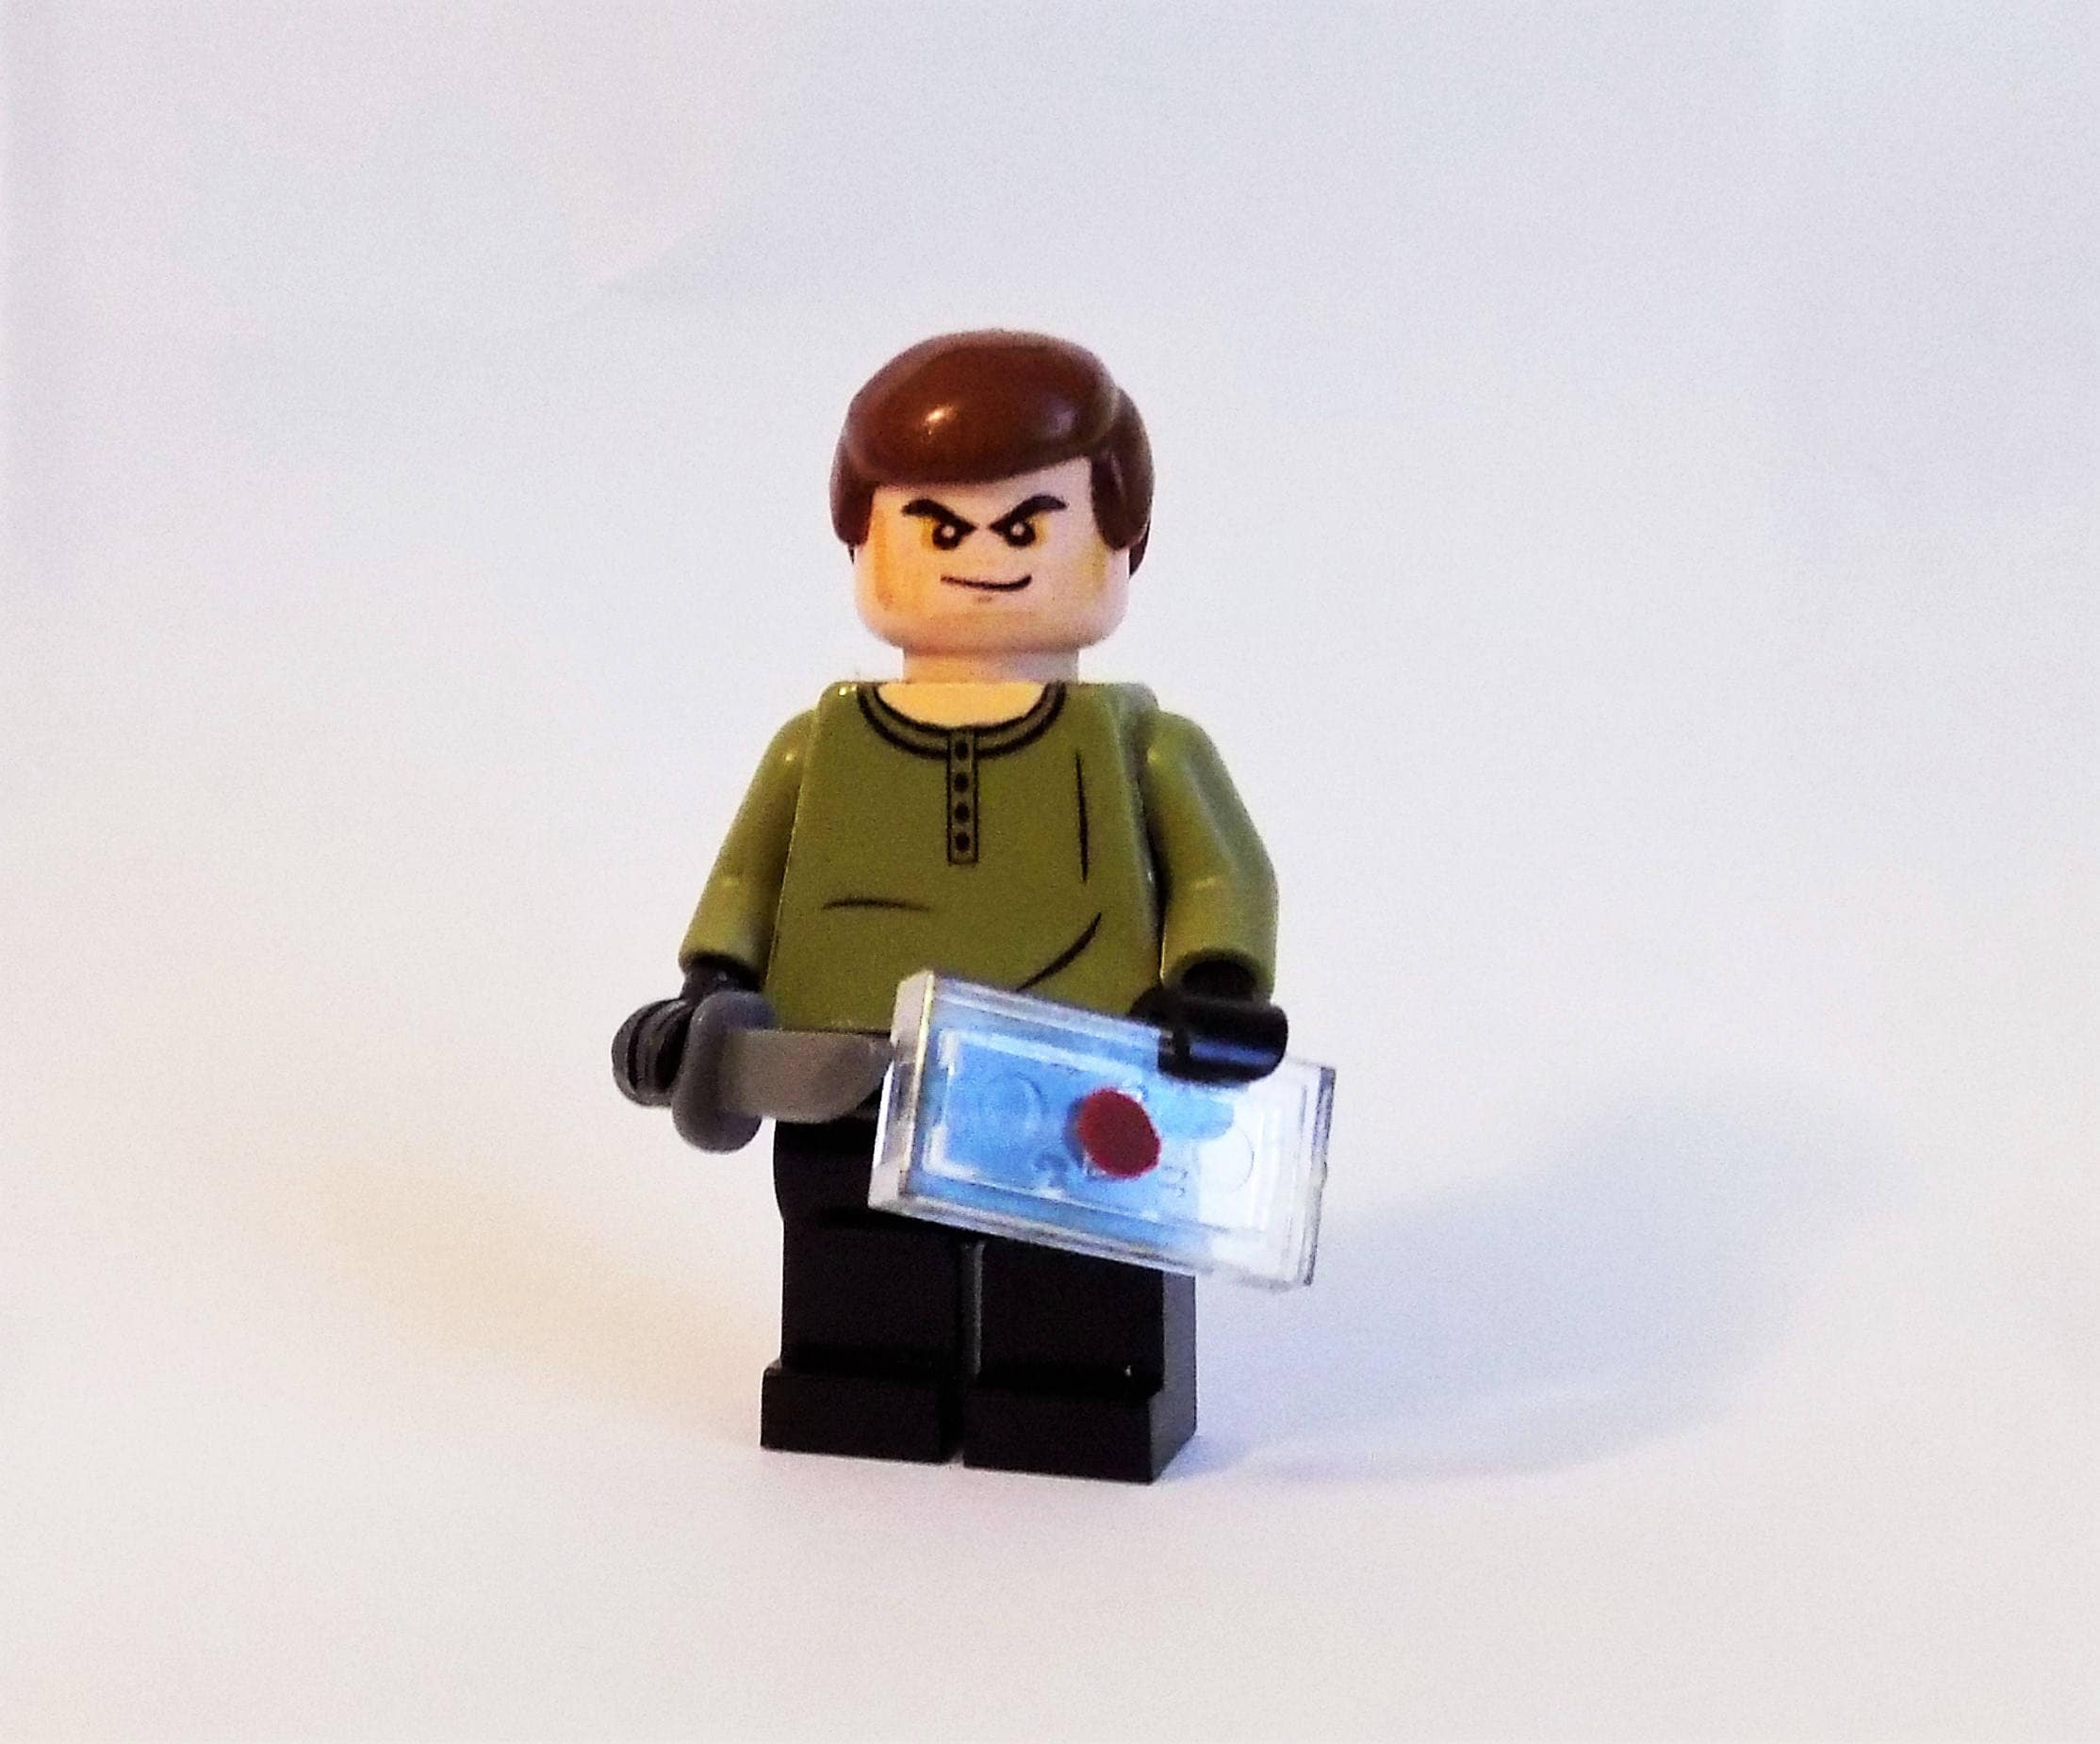 ... MARVEL's Toad - Custom LEGO Minifigure Decal   by Concorer